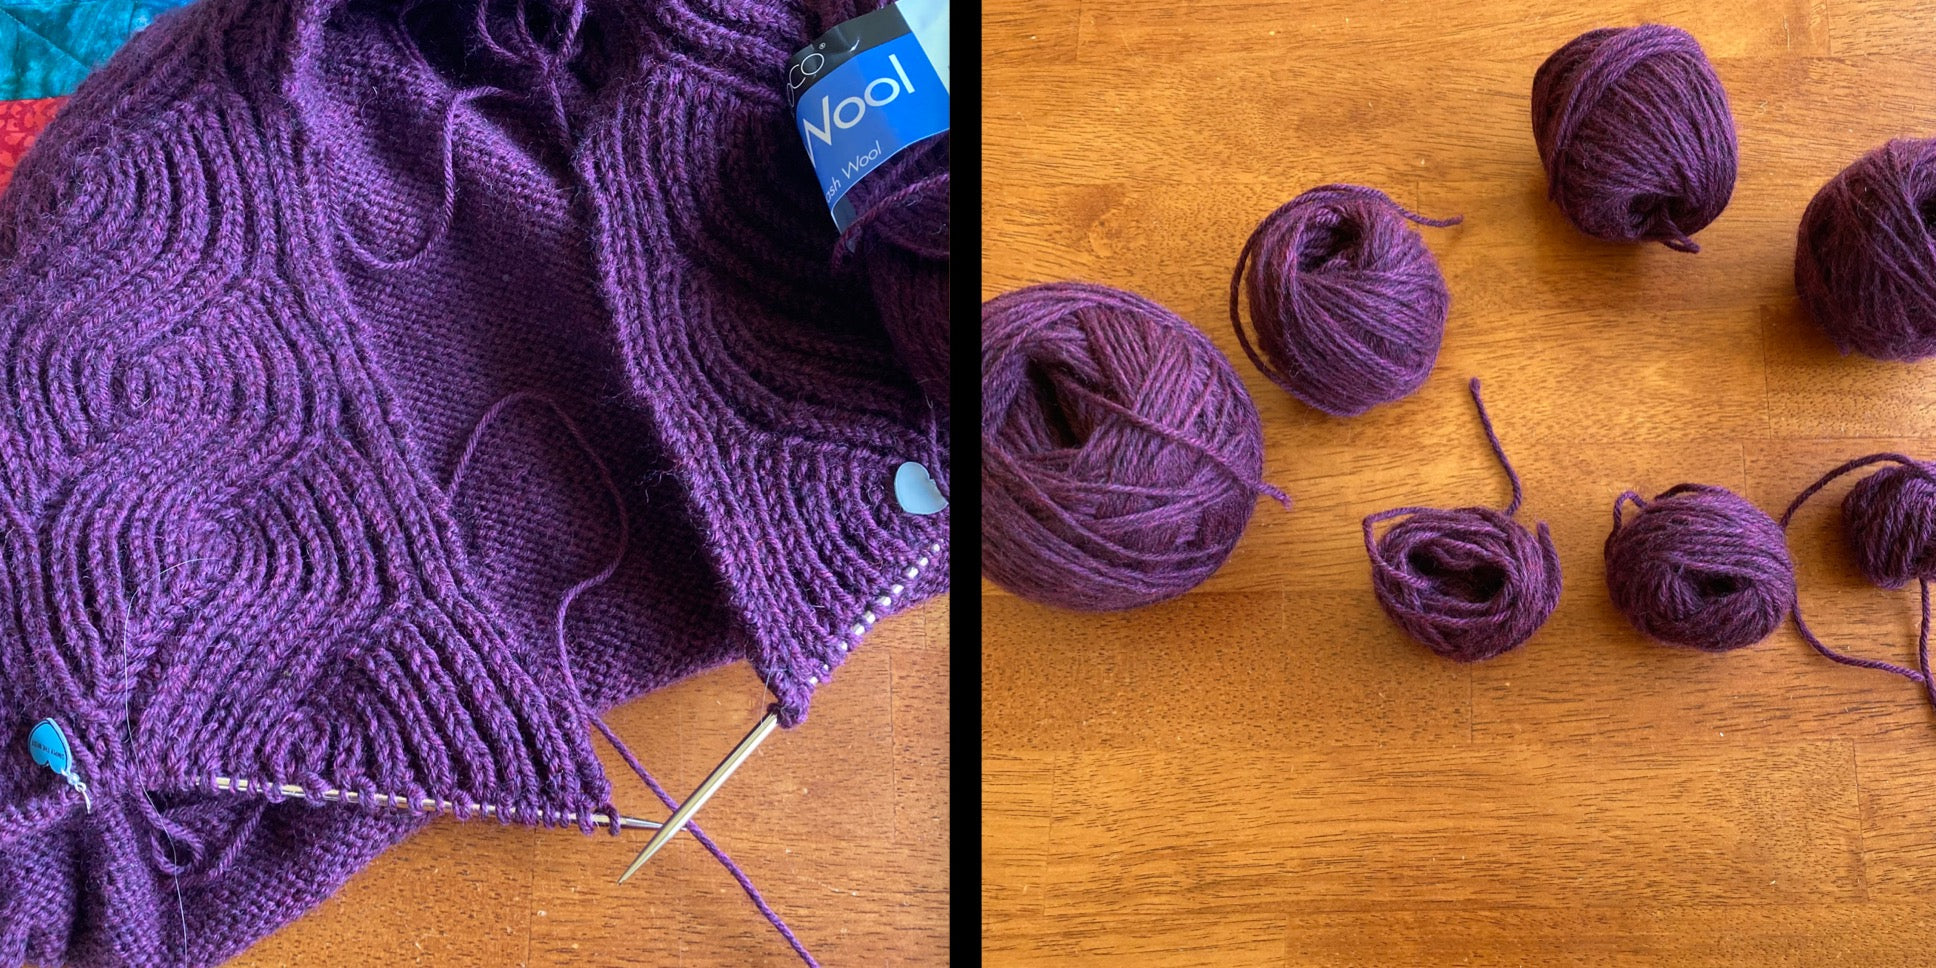 Split image of a partially completed deep plum sweater with brioche lapels on the left, and seven small hand wound balls on the right after the project was frogged in order to correct a catastrophic mistake.